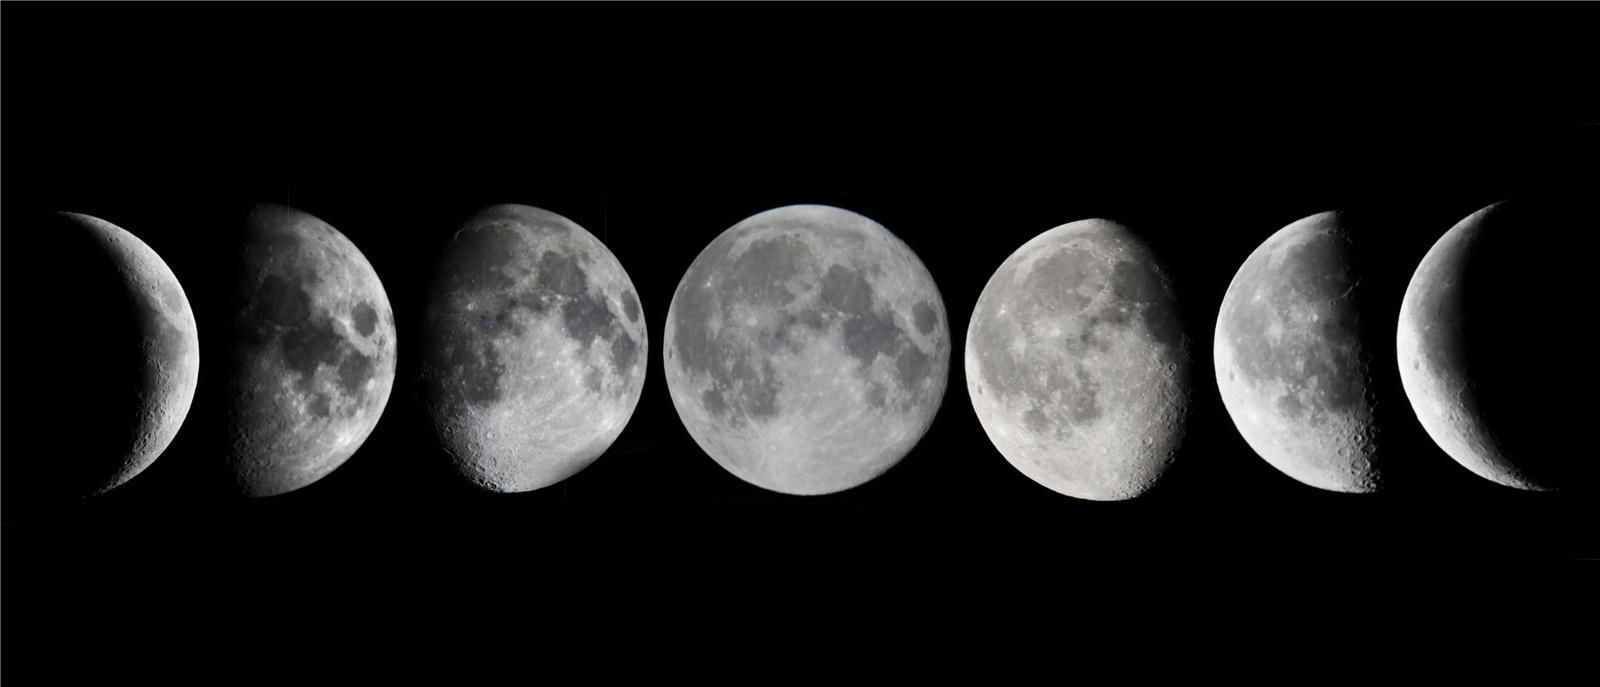 Moon Phase: First Quarter